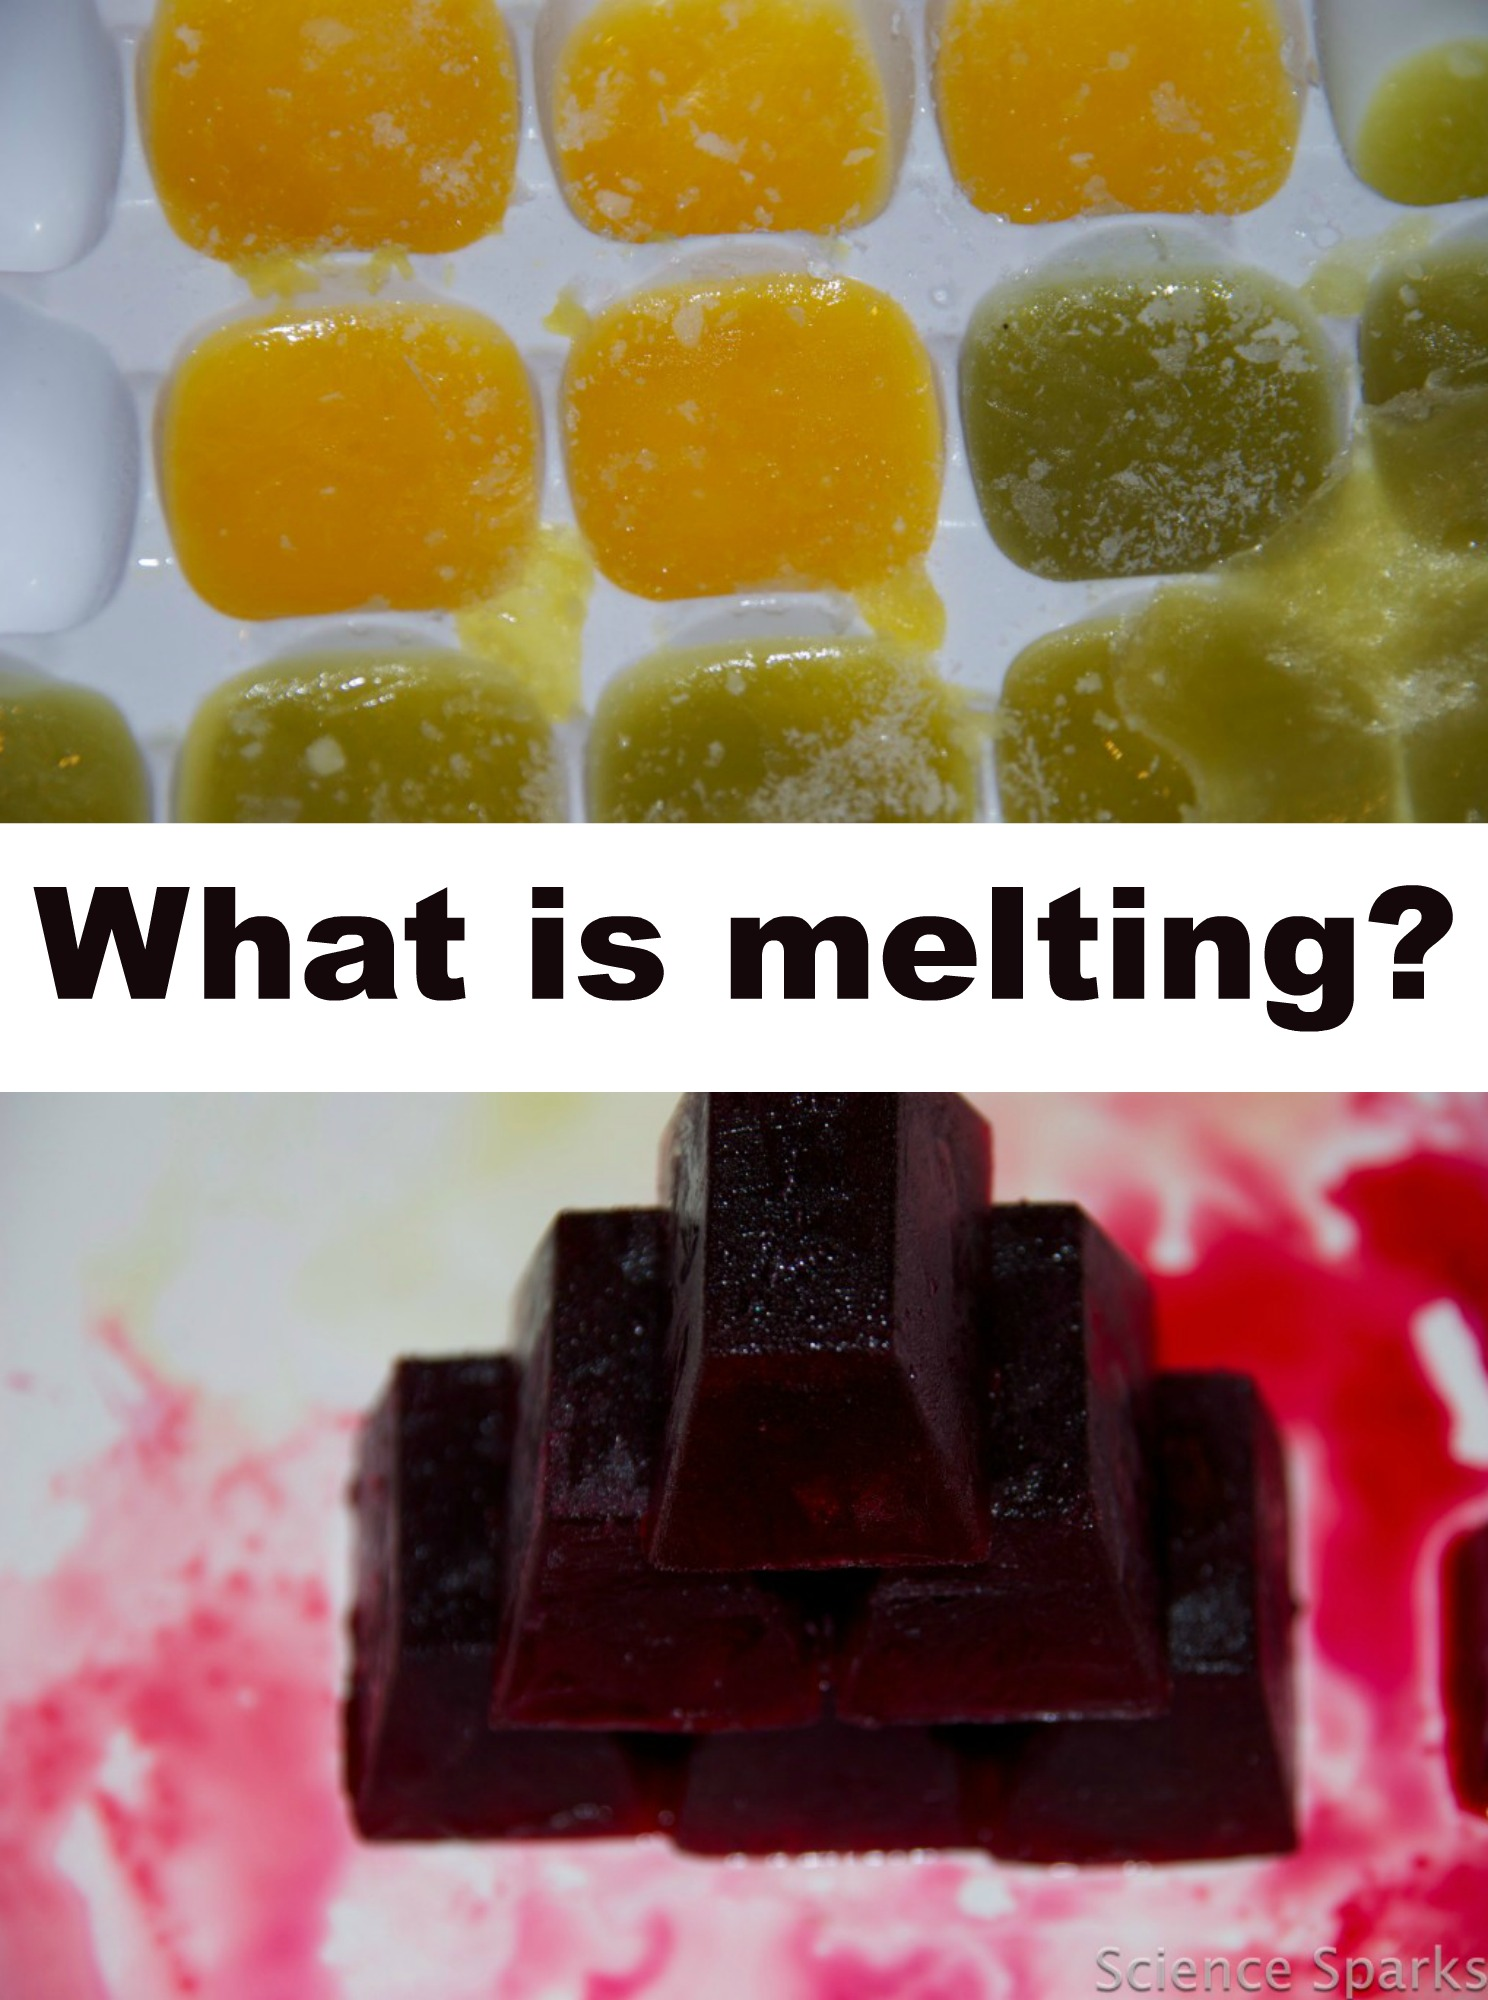 What is melting?